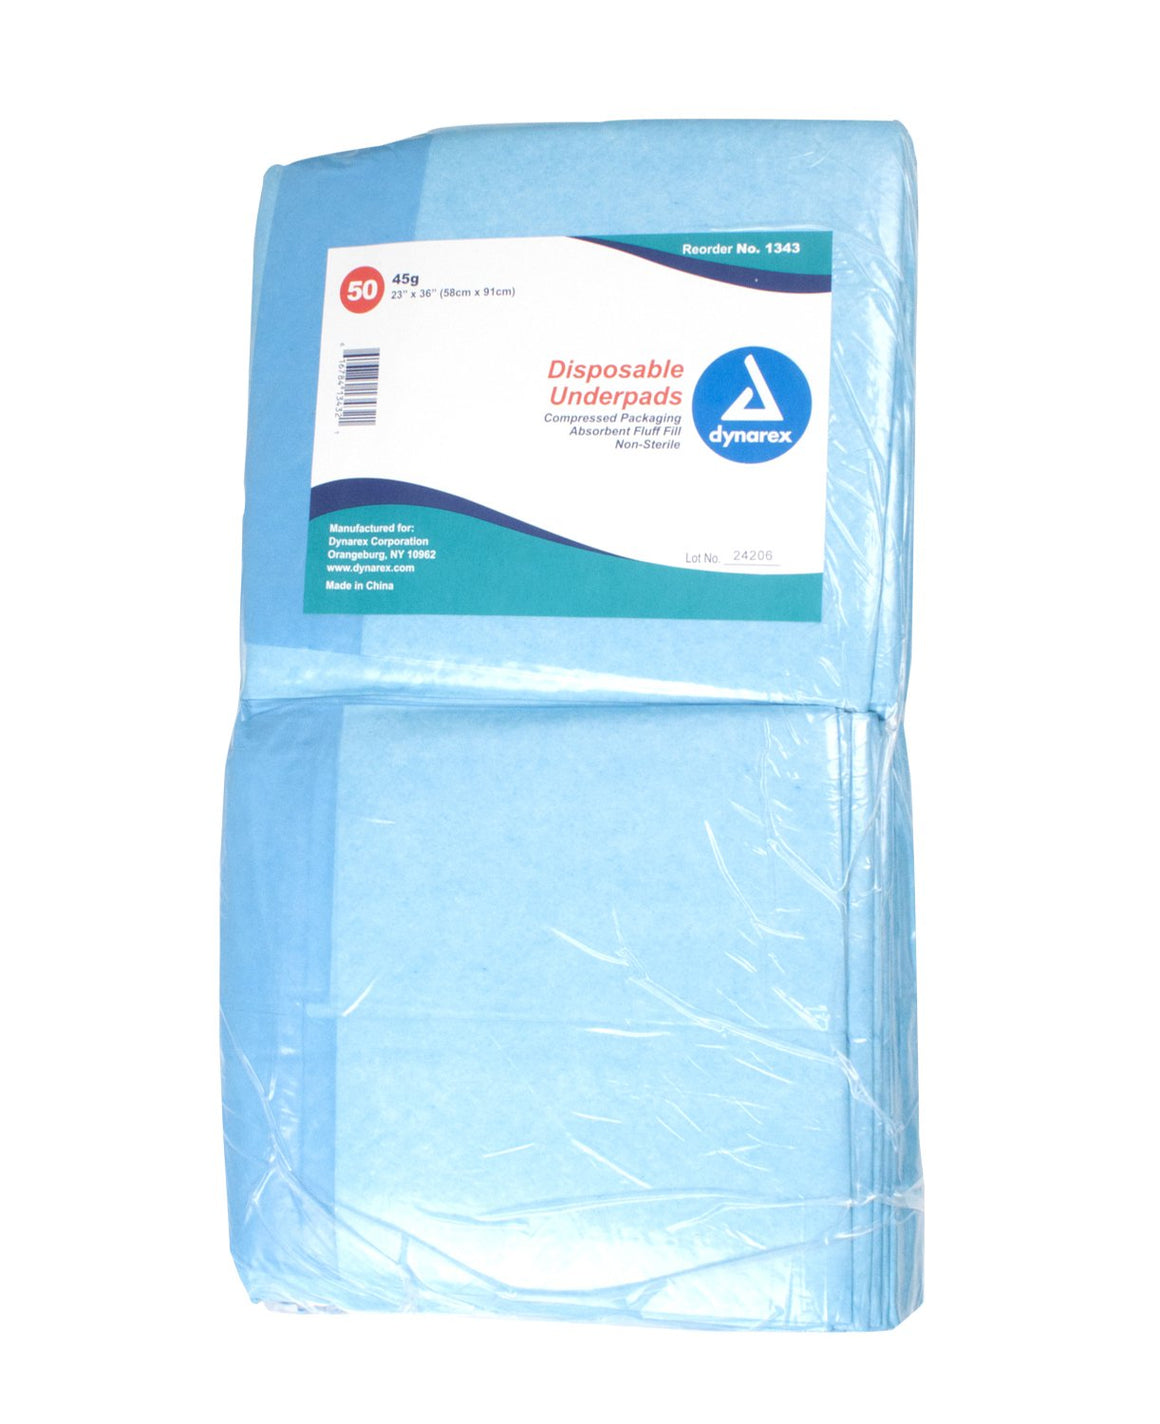 Dynarex¨ Disposable Fluff Absorbent Underpad